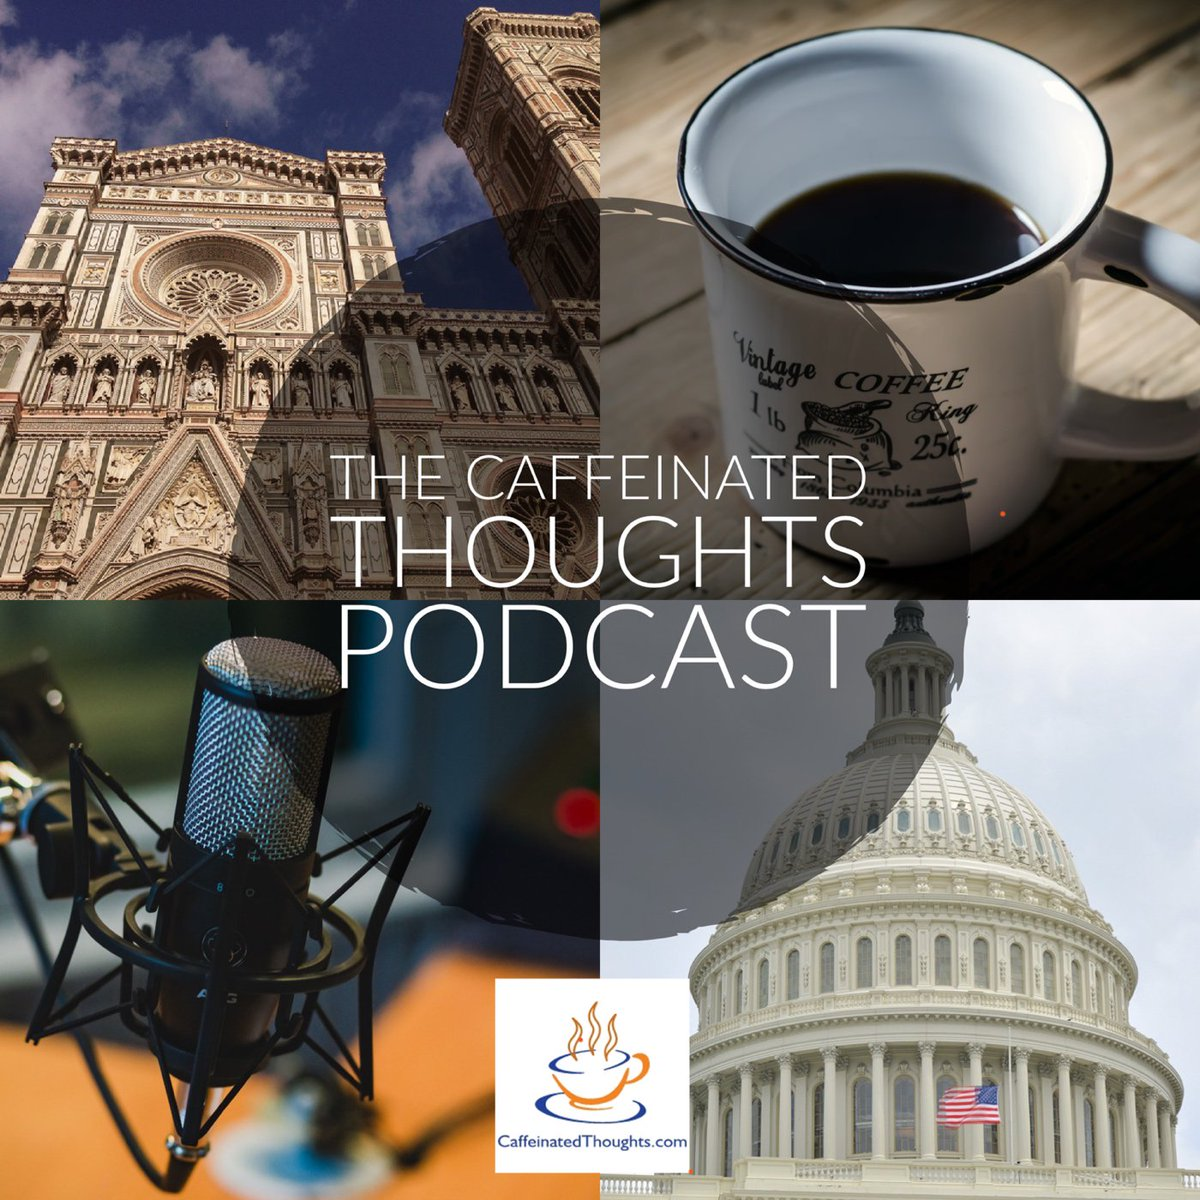 RT @shanevanderhart: Be sure to check out the new @CaffThoughts podcast! https://t.co/prGOuKhMg0 https://t.co/pvW6rvEXN2